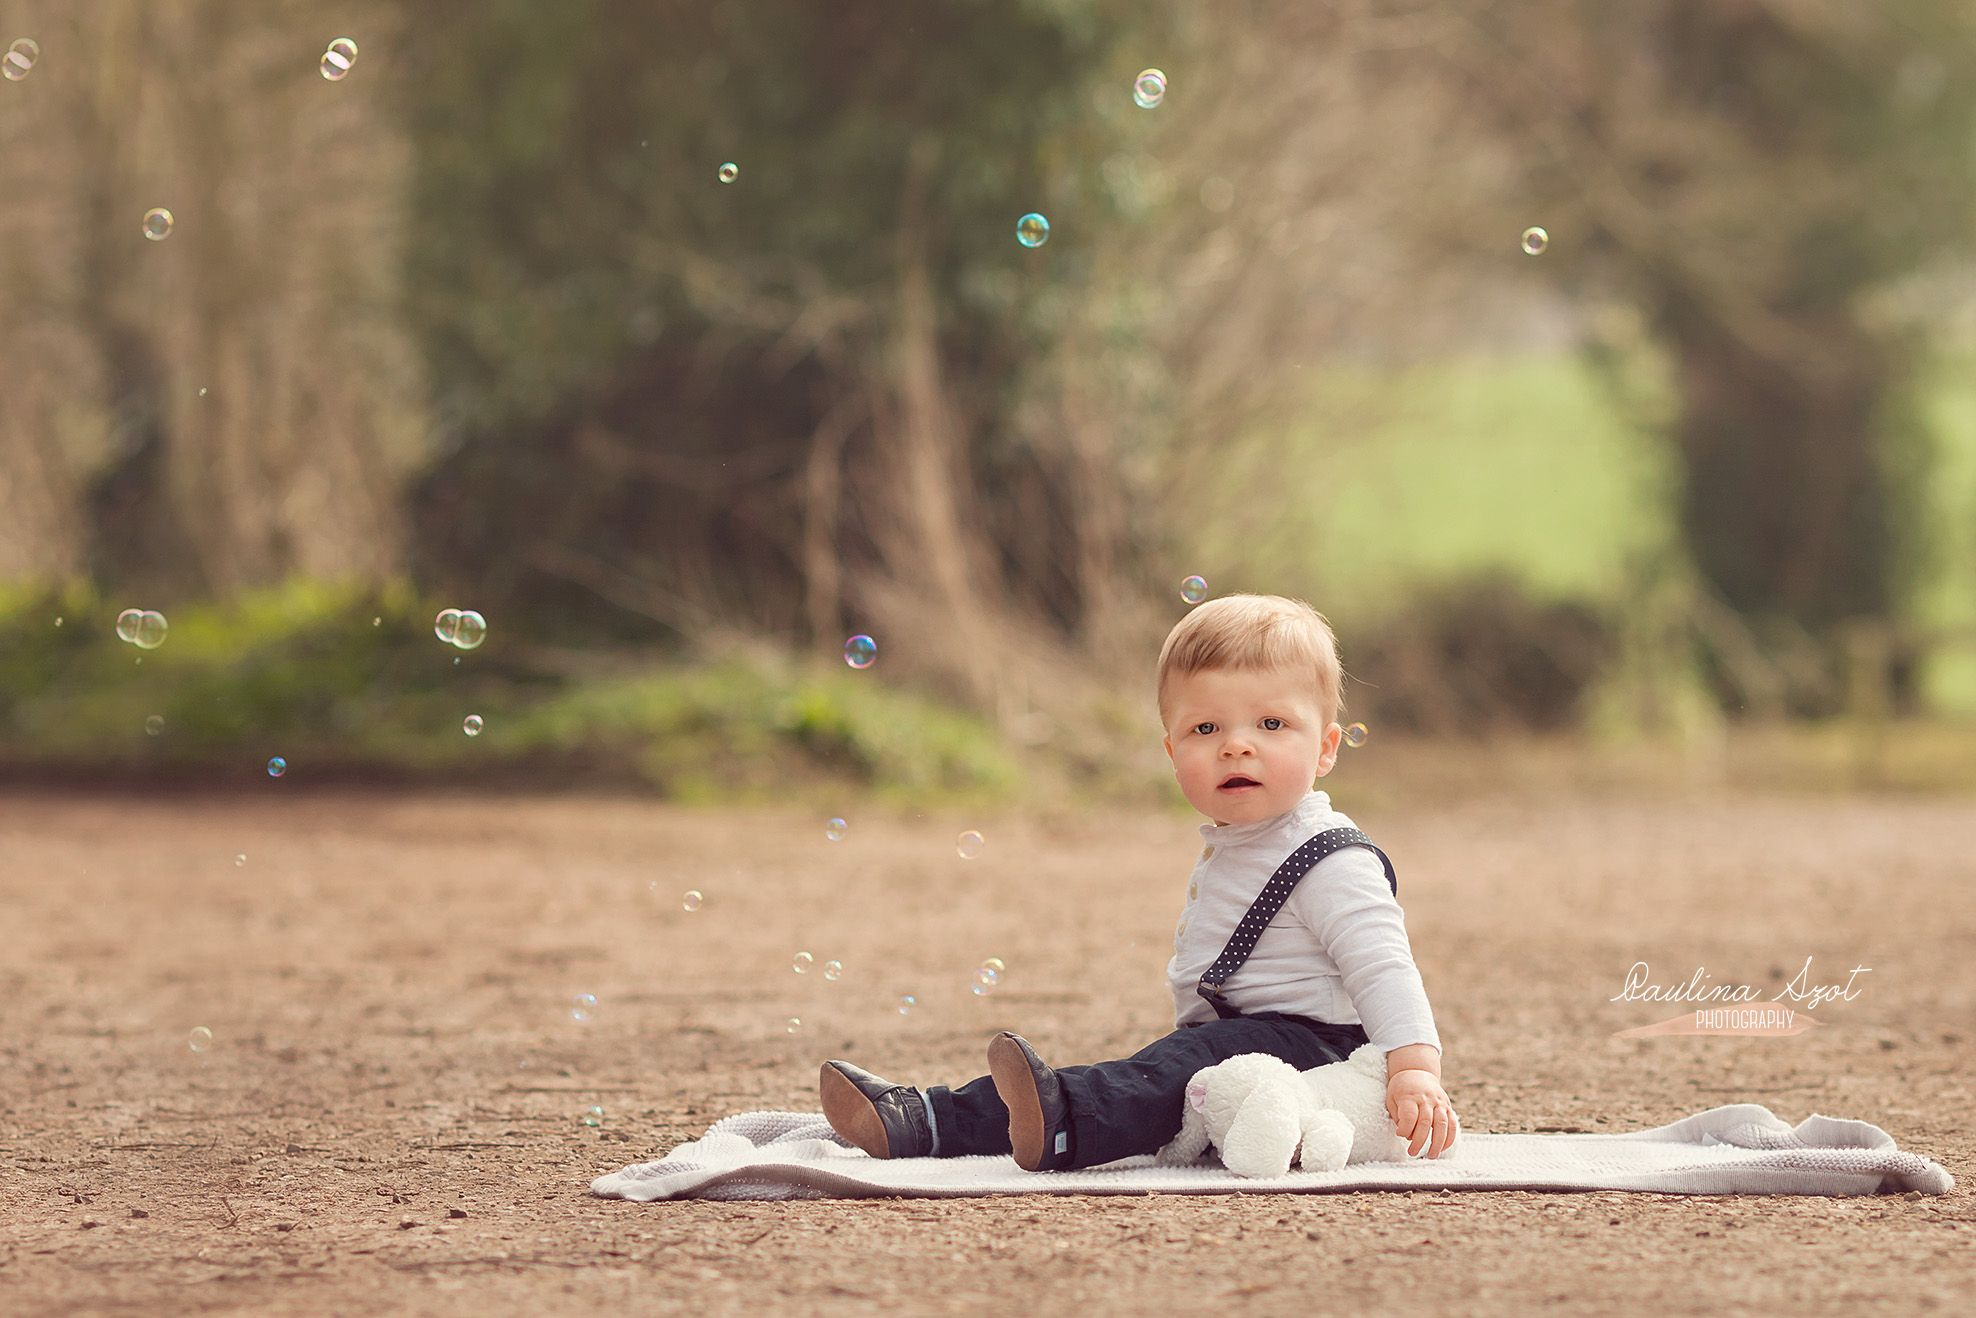 Outdoor children photography sitter session 135 mm